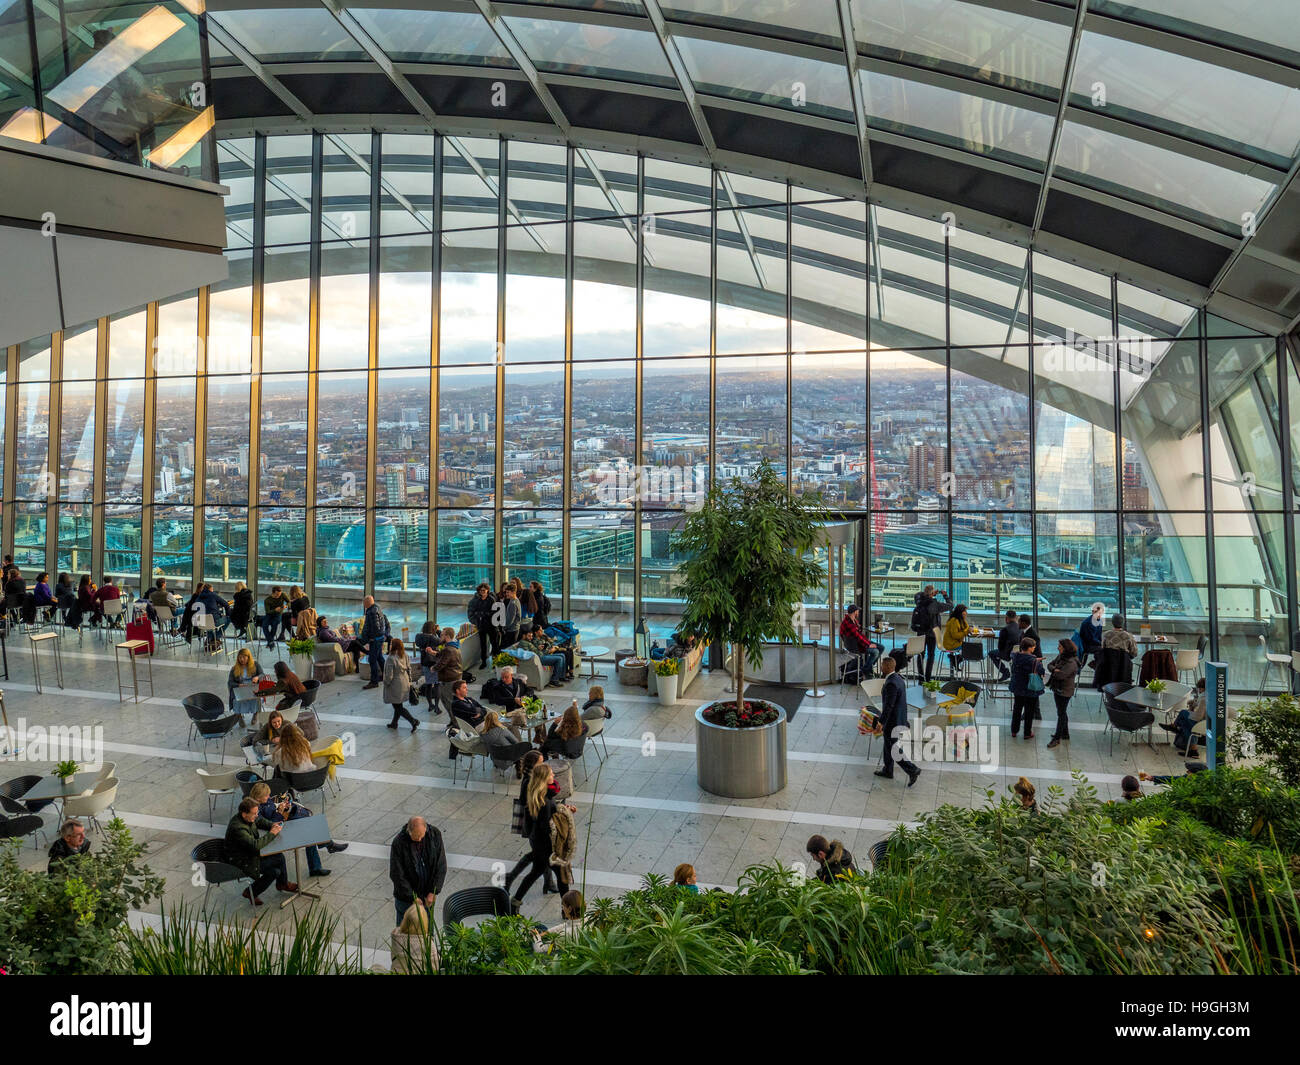 The Sky Garden at the top of the Walkie Talkie Building (20 Fenchurch Street), London, UK. - Stock Image